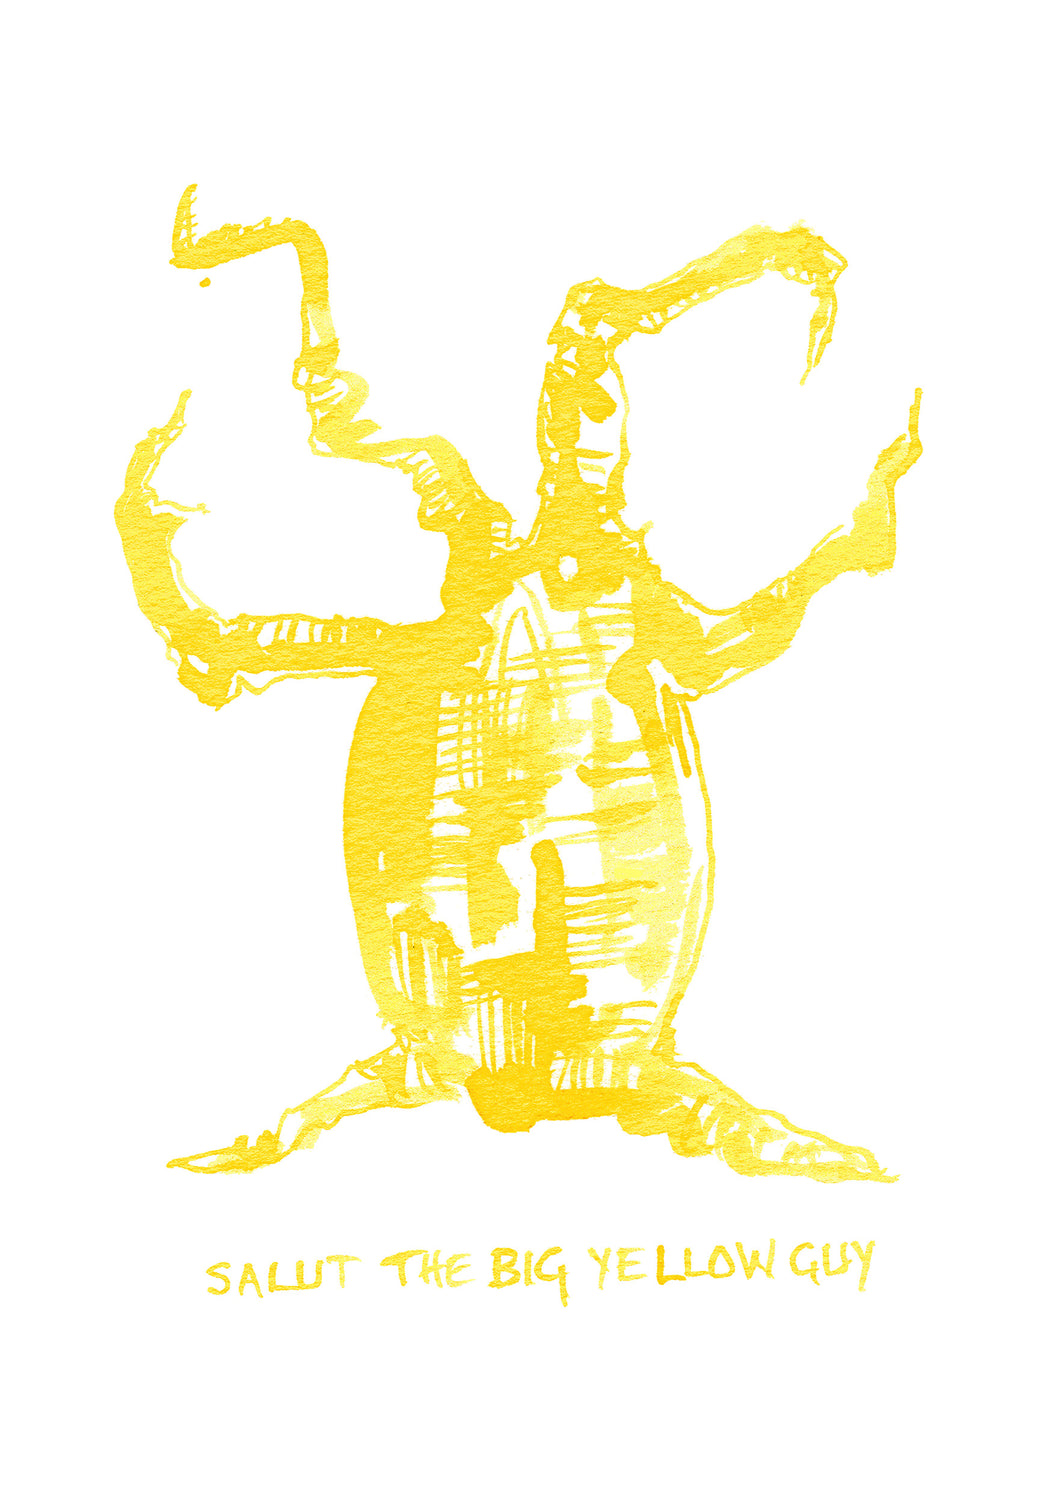 46. Salut the big yellow guy